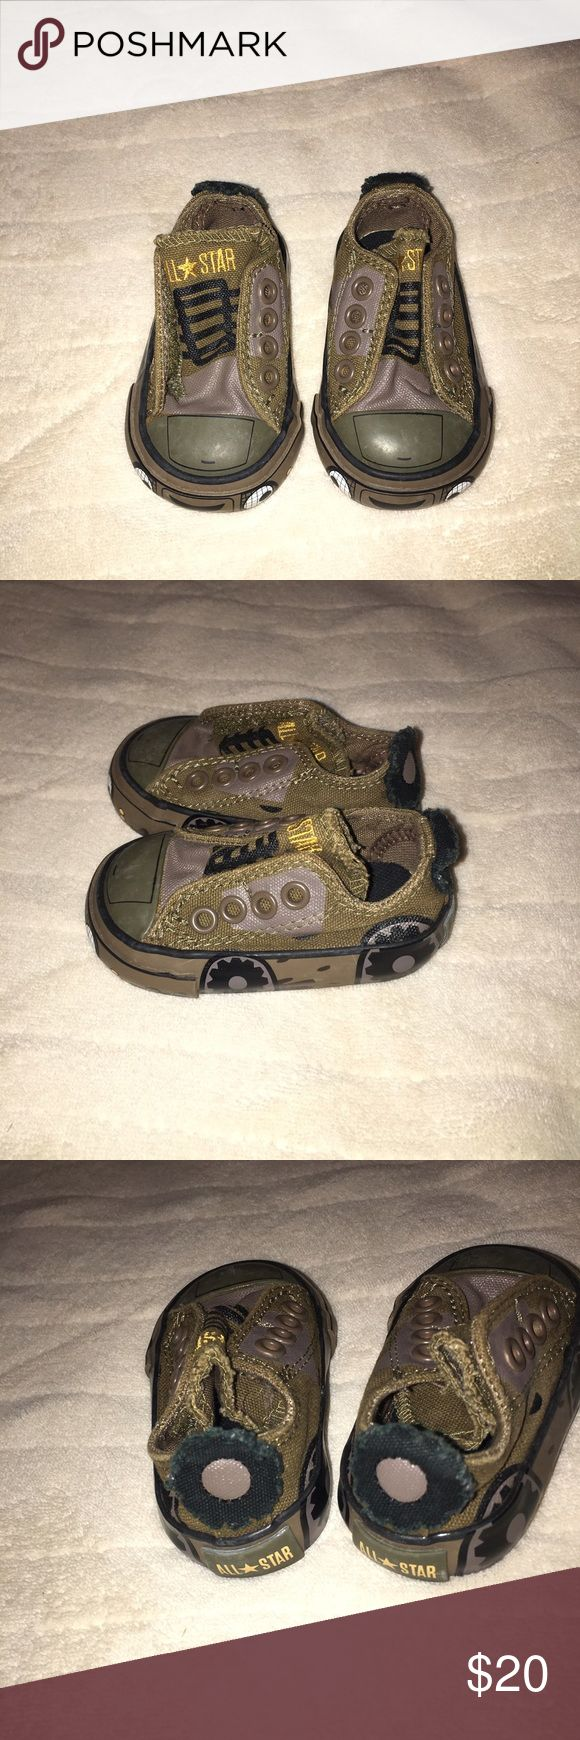 All Star Converse Infant Shoes JEEP shoes Sz 2 Shoe looks like a jeep please see photos looks brand new Infant Sz 2 all star converse Shoes